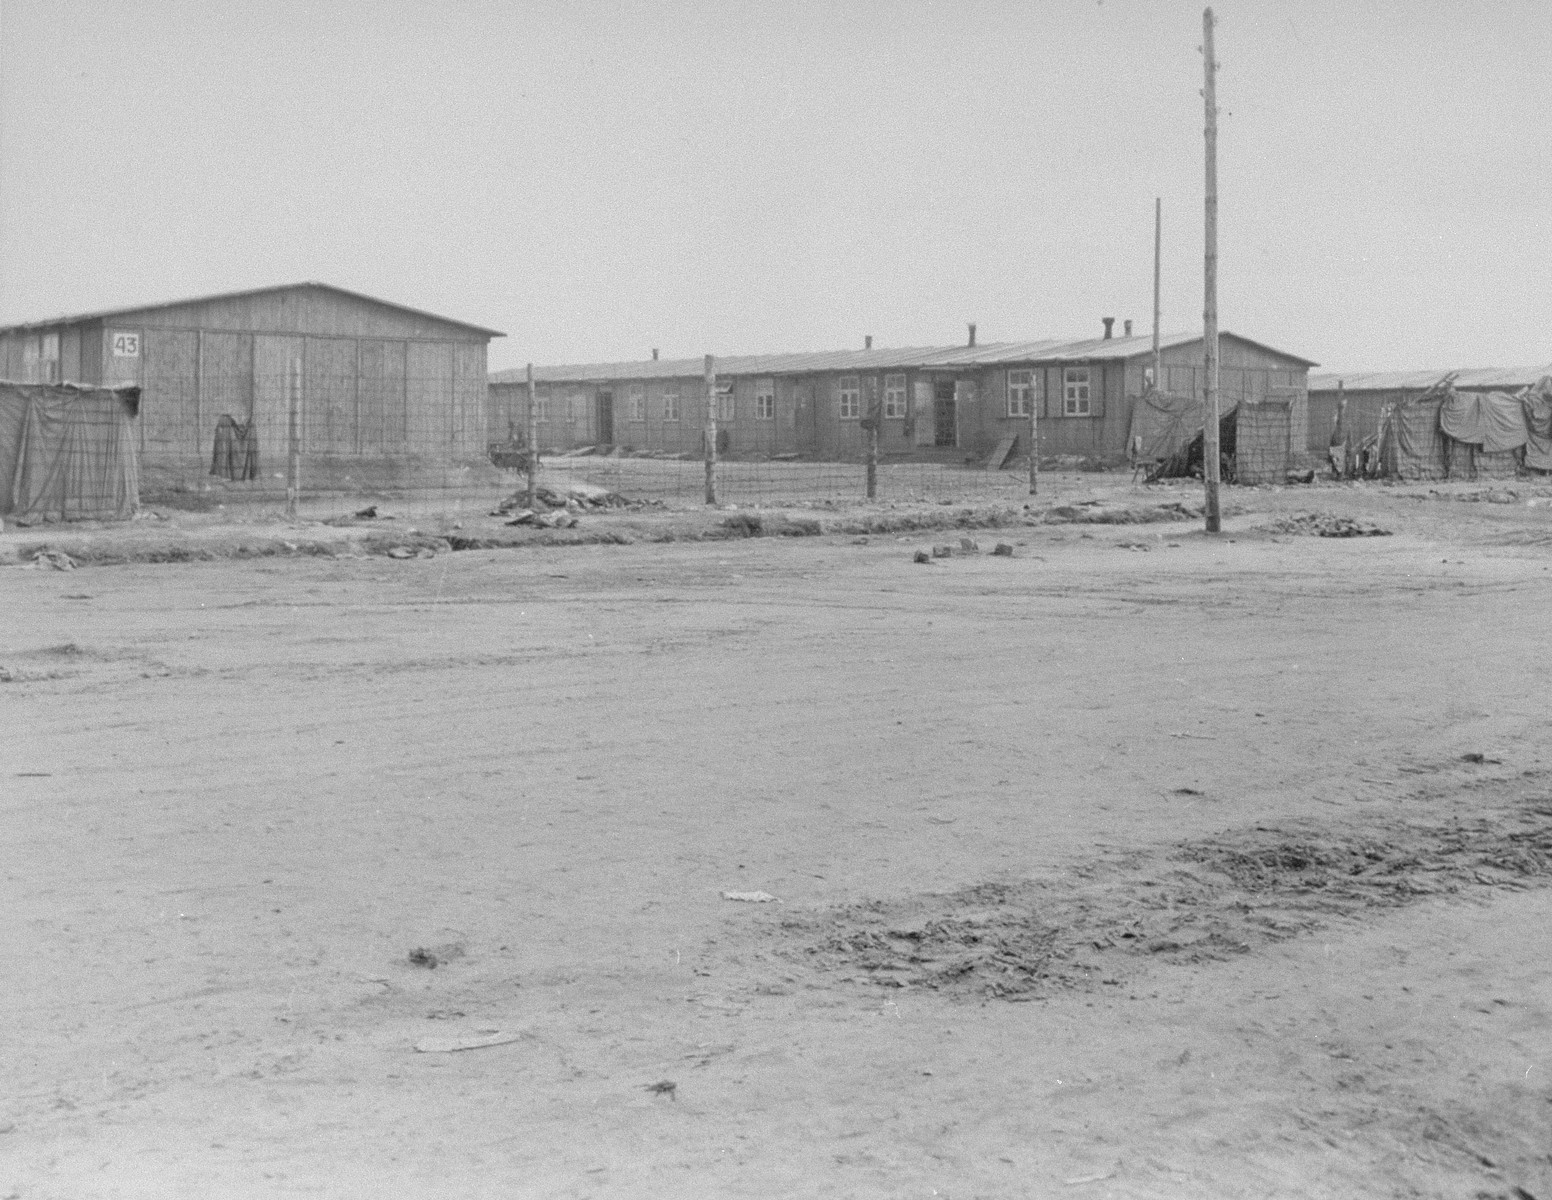 The women's barracks in Bergen-Belsen.